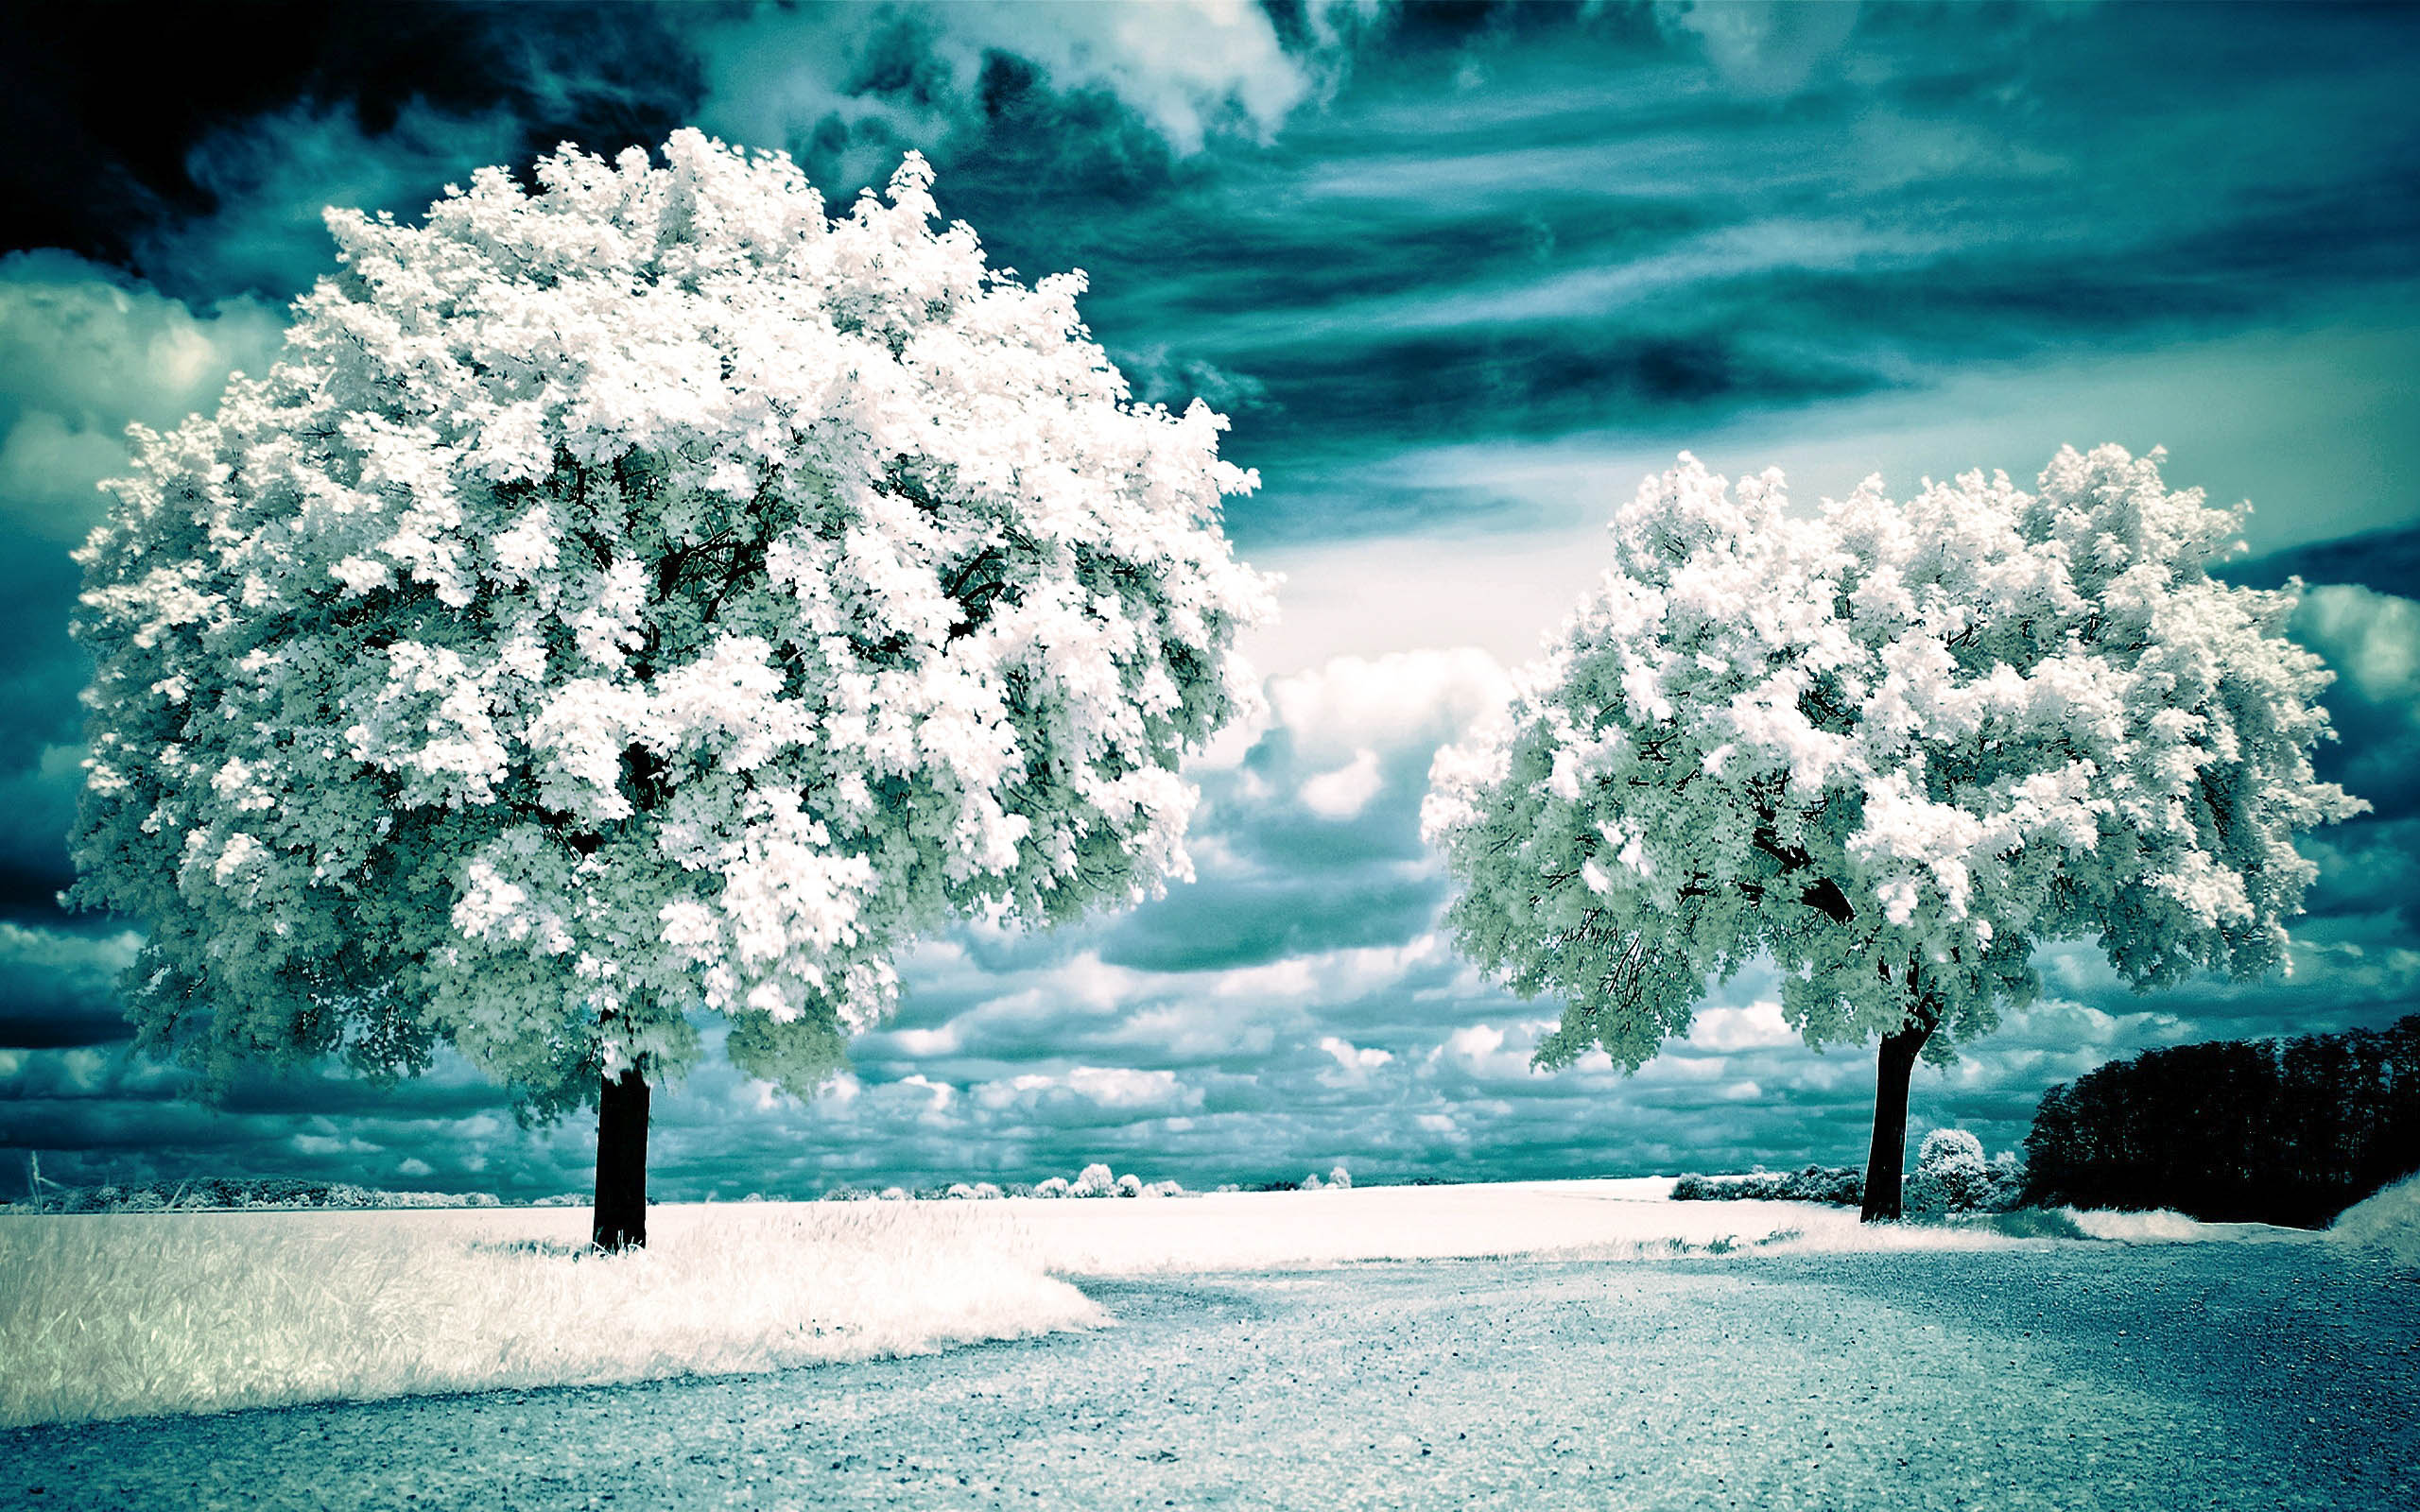 Beautiful Scenic Hd Wallpapers 2015 High Quality - All -7053